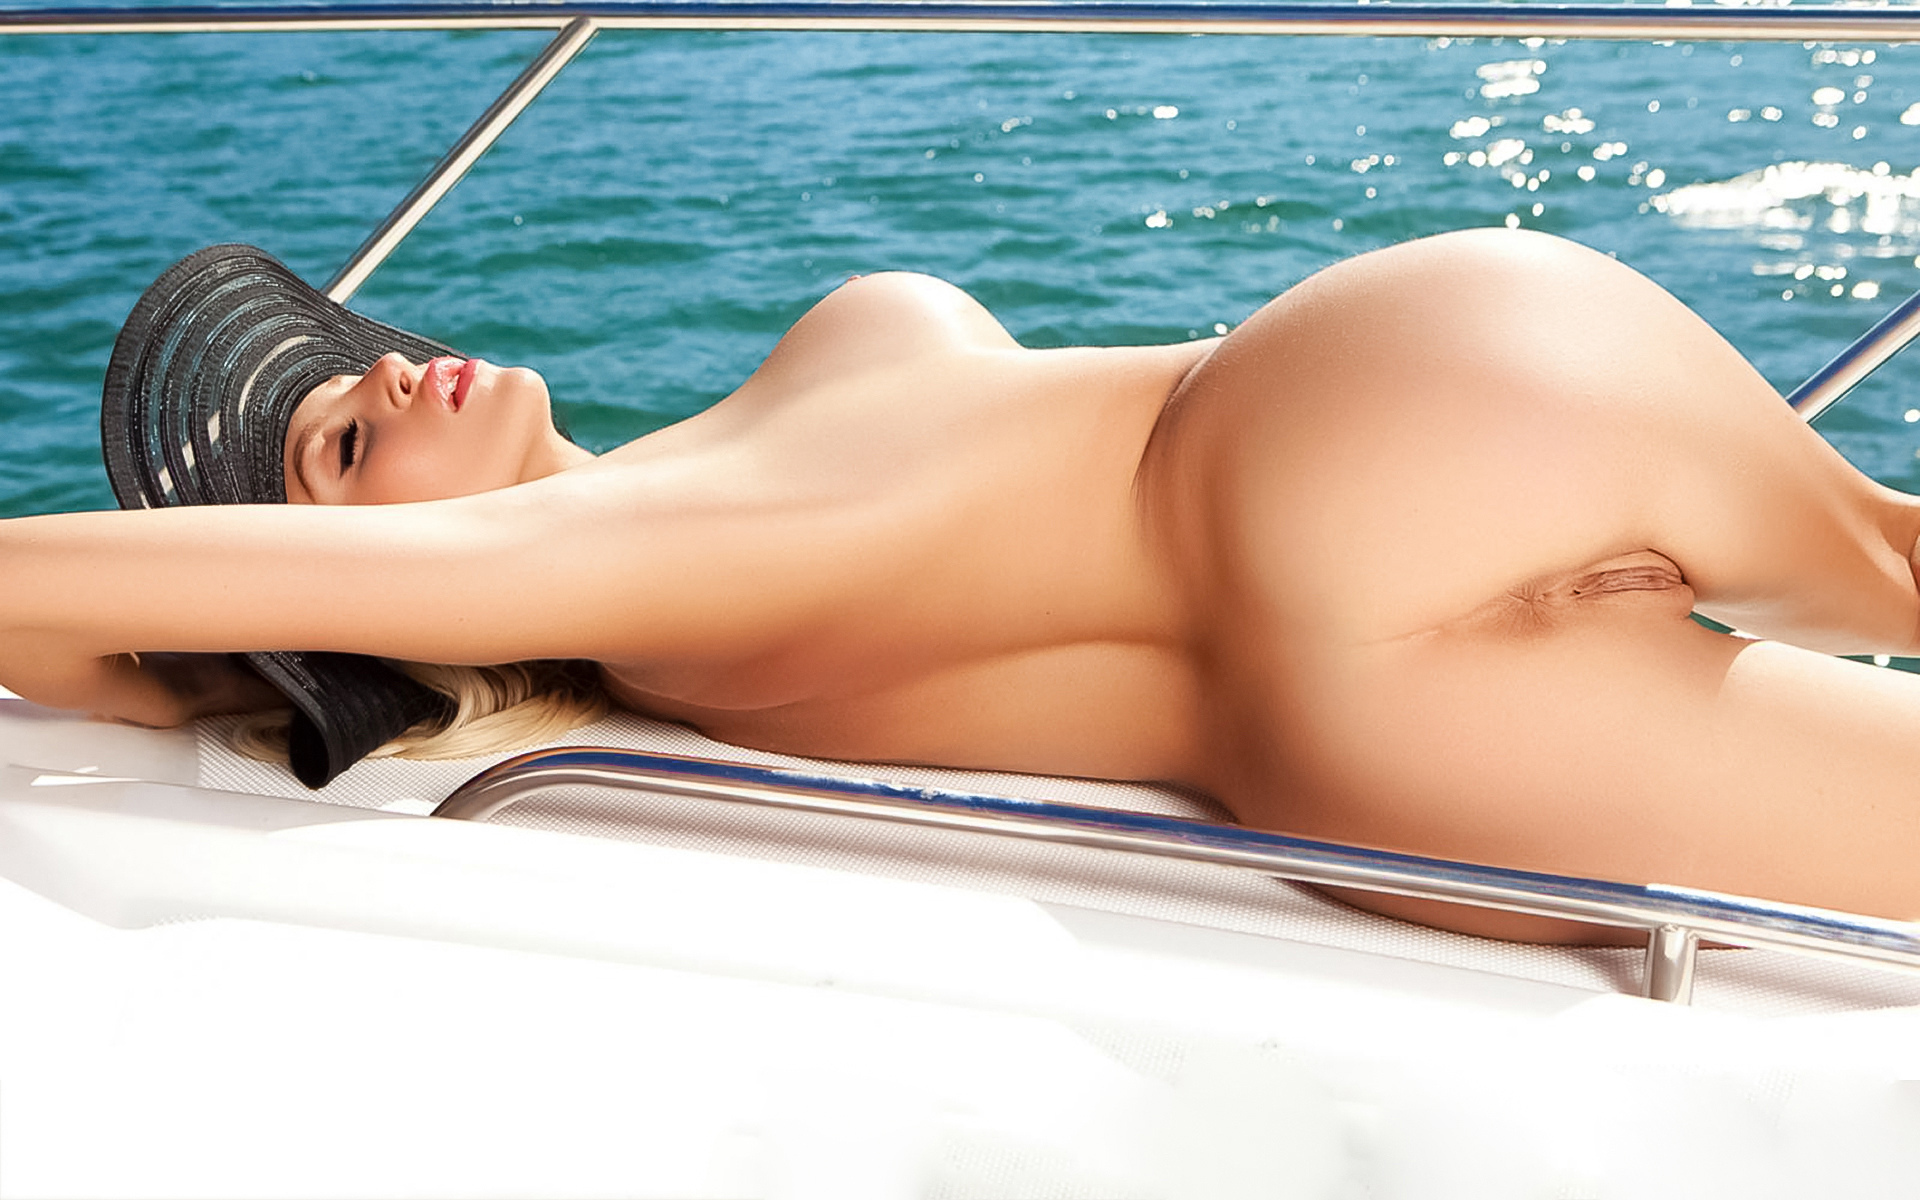 khloe terae, in hot on the, yacht